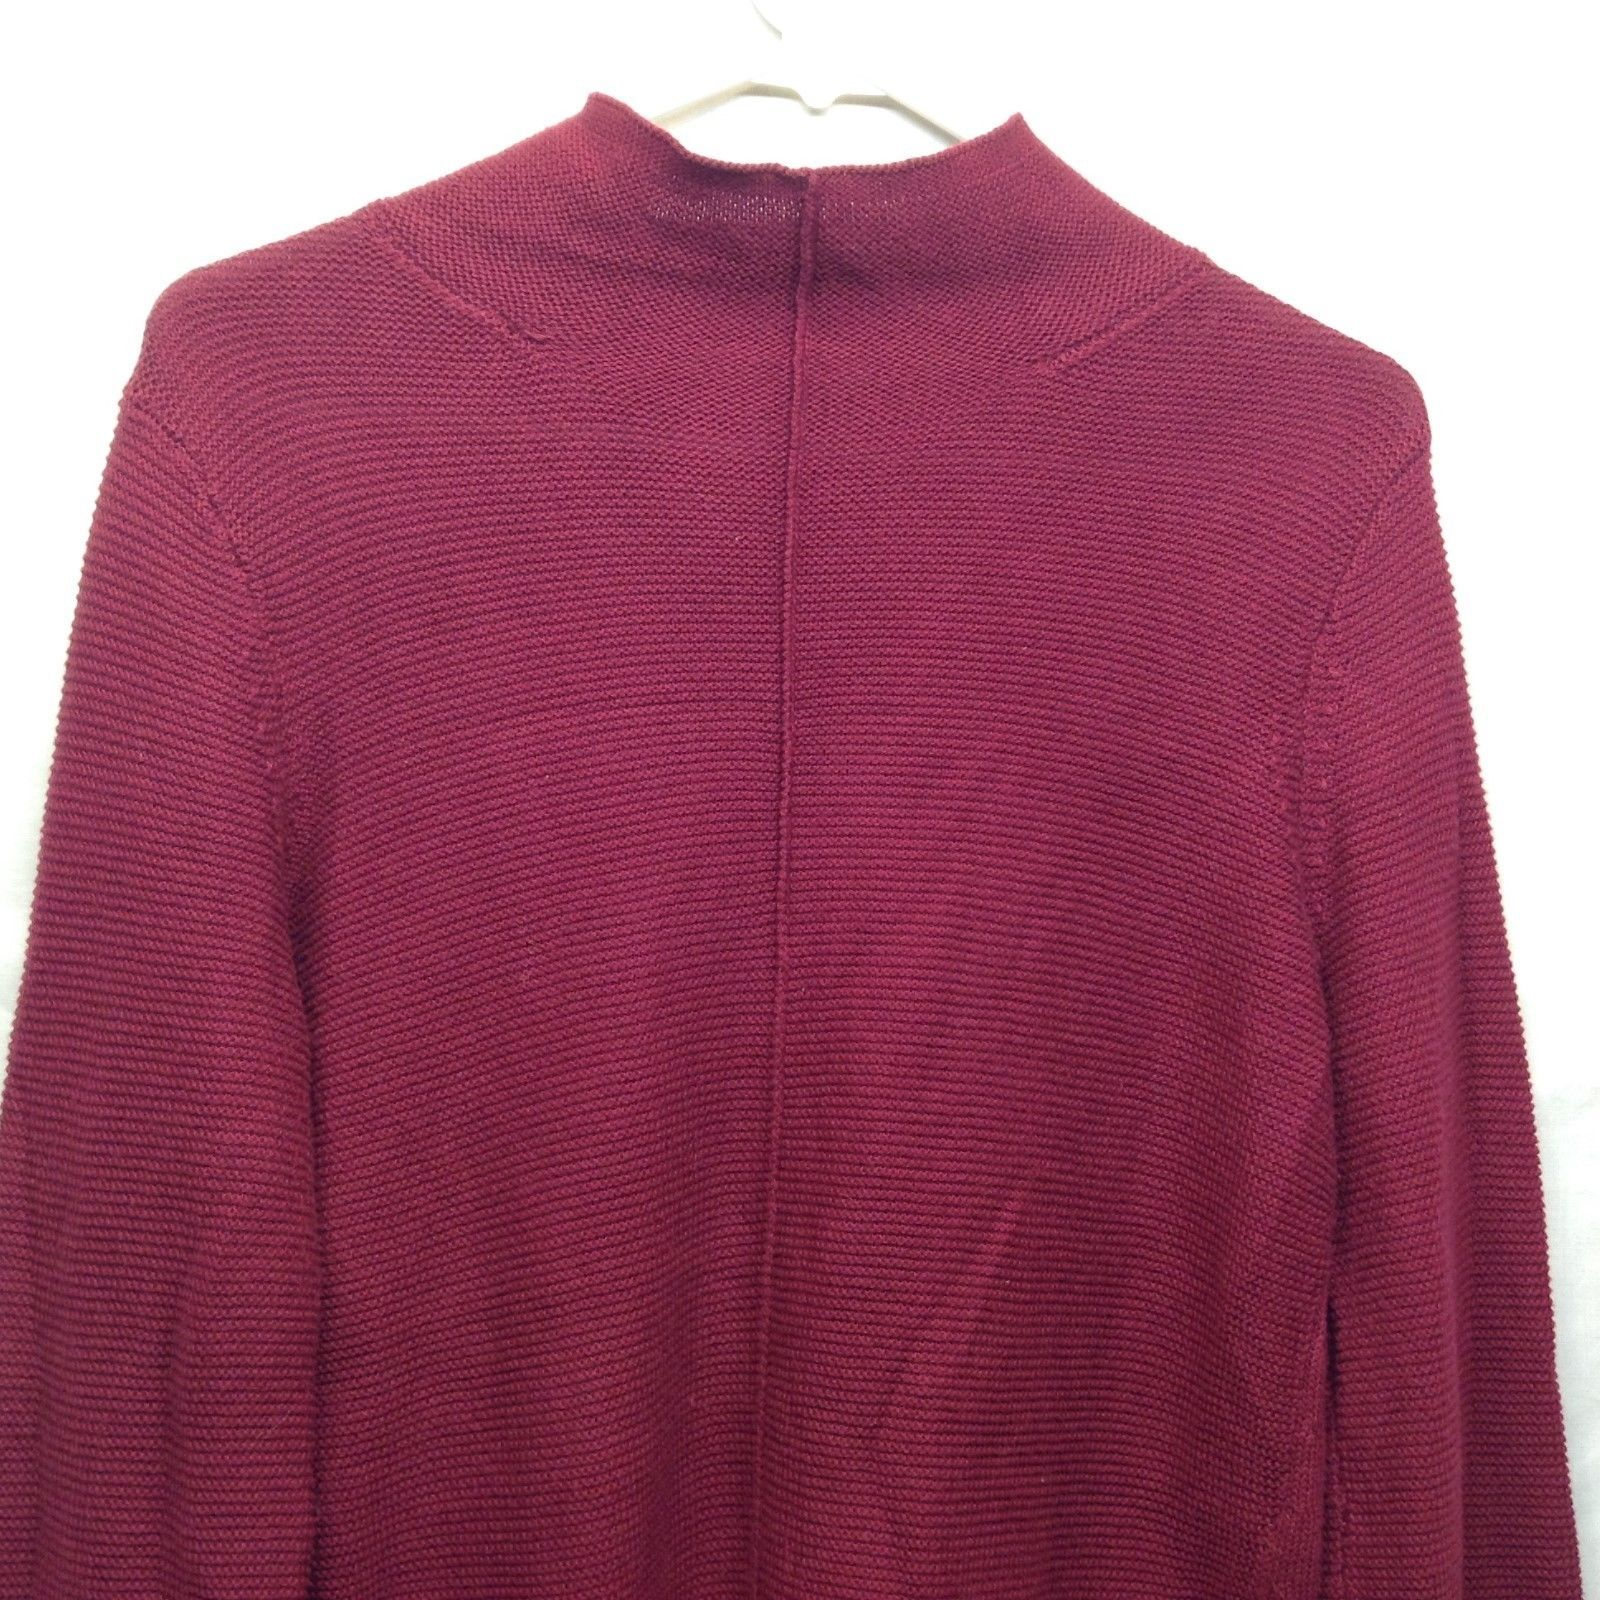 Ladies Knit Red Crew Neck Sweater by August Silk